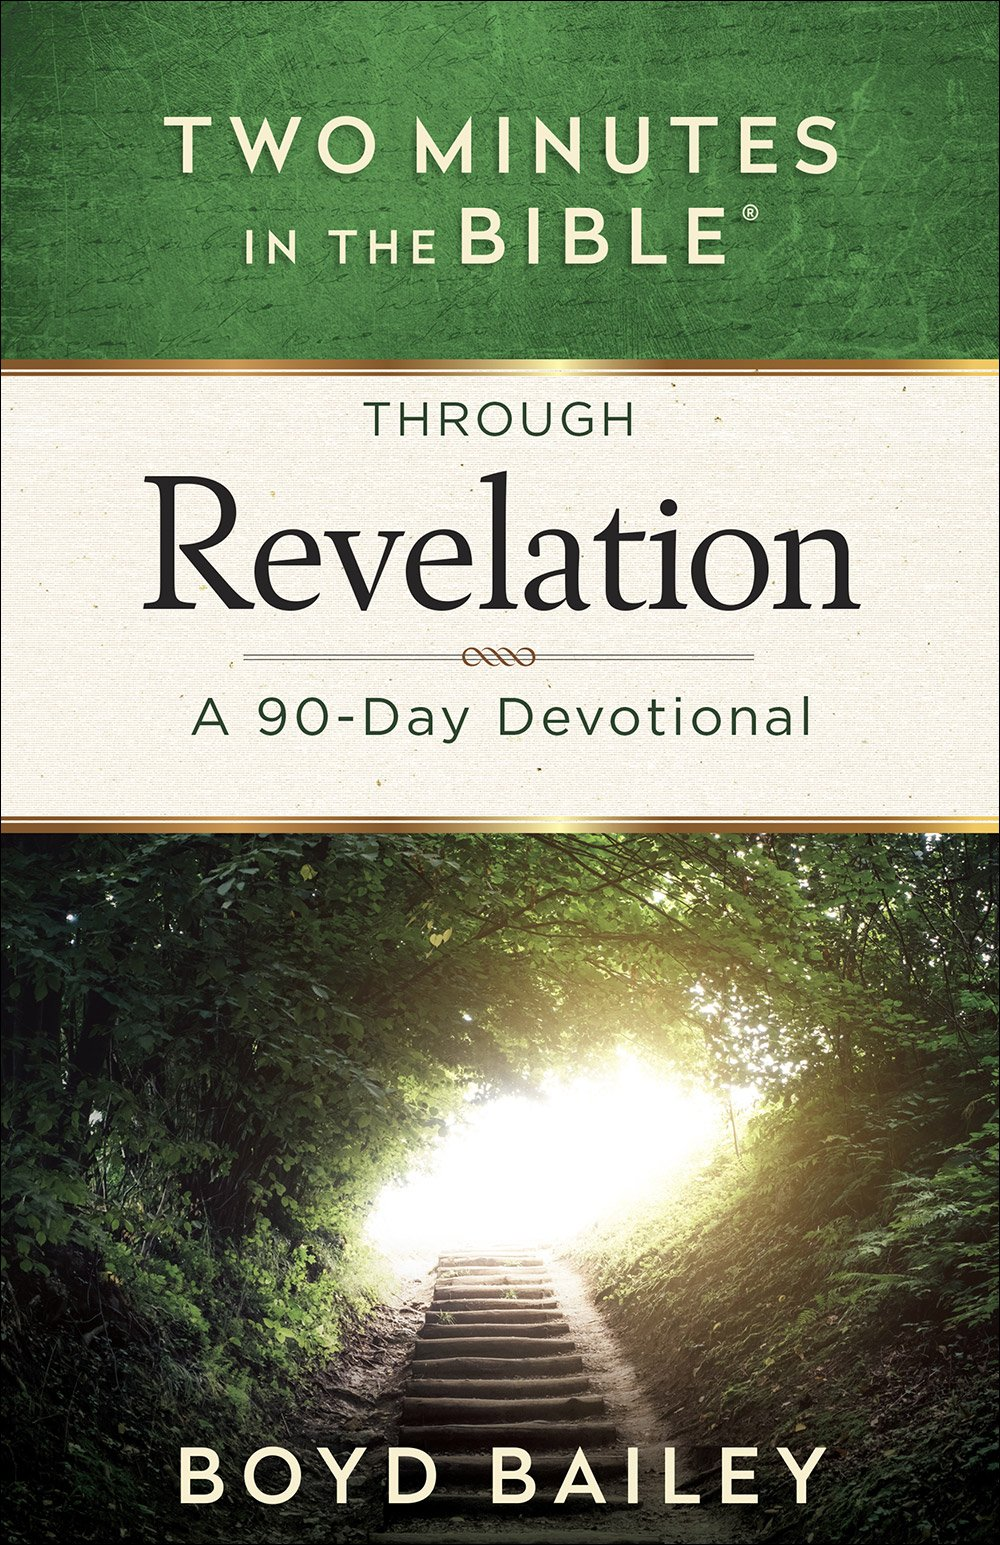 Two Minutes in the Bible® Through Revelation: A 90-Day Devotional: Boyd  Bailey: 9780736969277: Amazon.com: Books